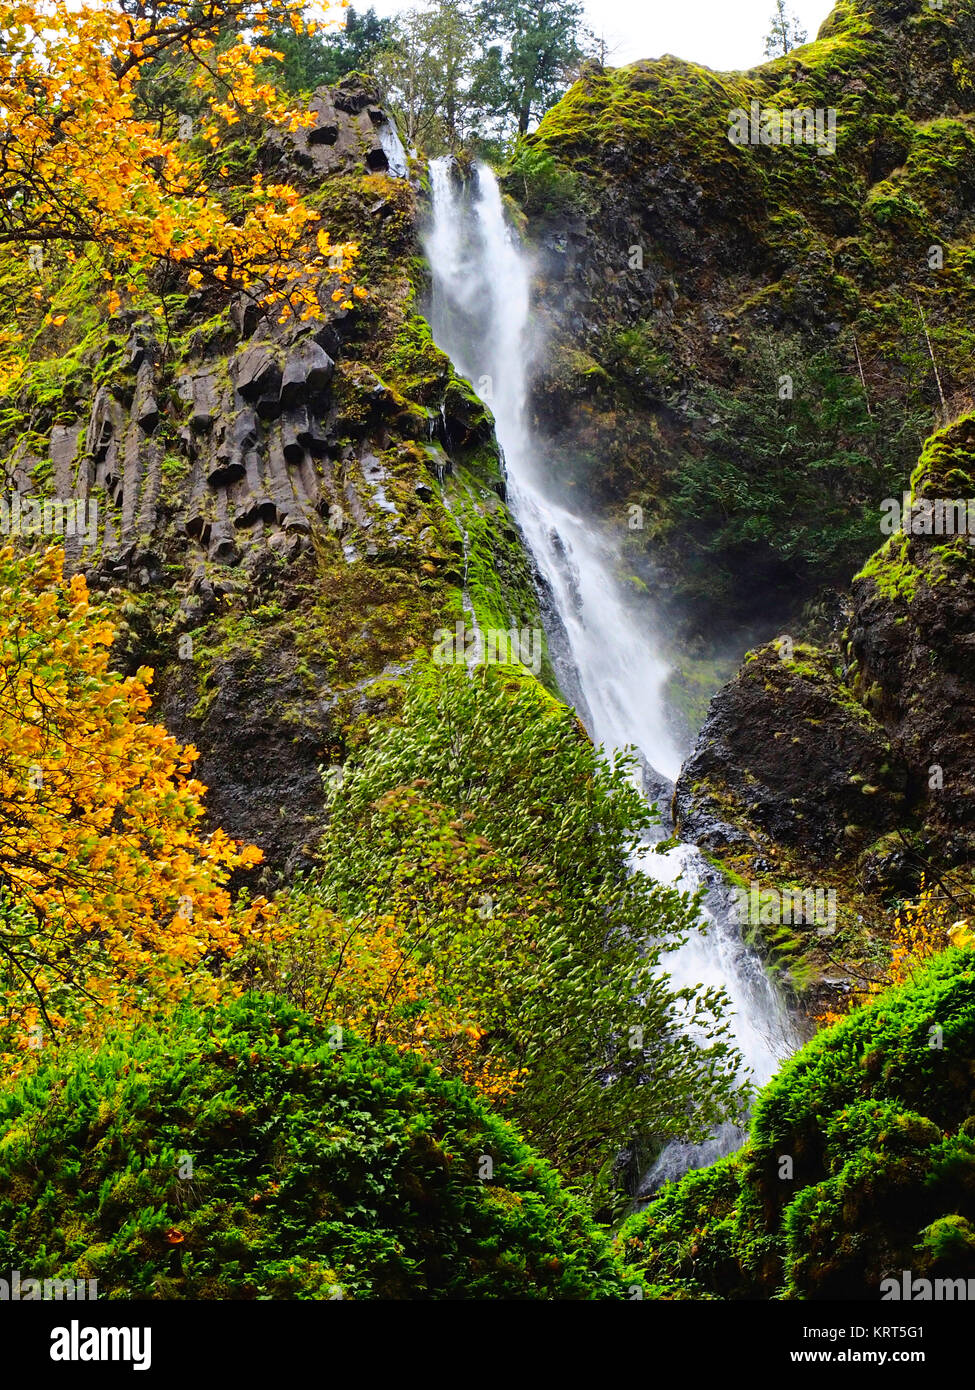 Waterfall at Oregon's Starvation Creek State Park in autumn. - Stock Image